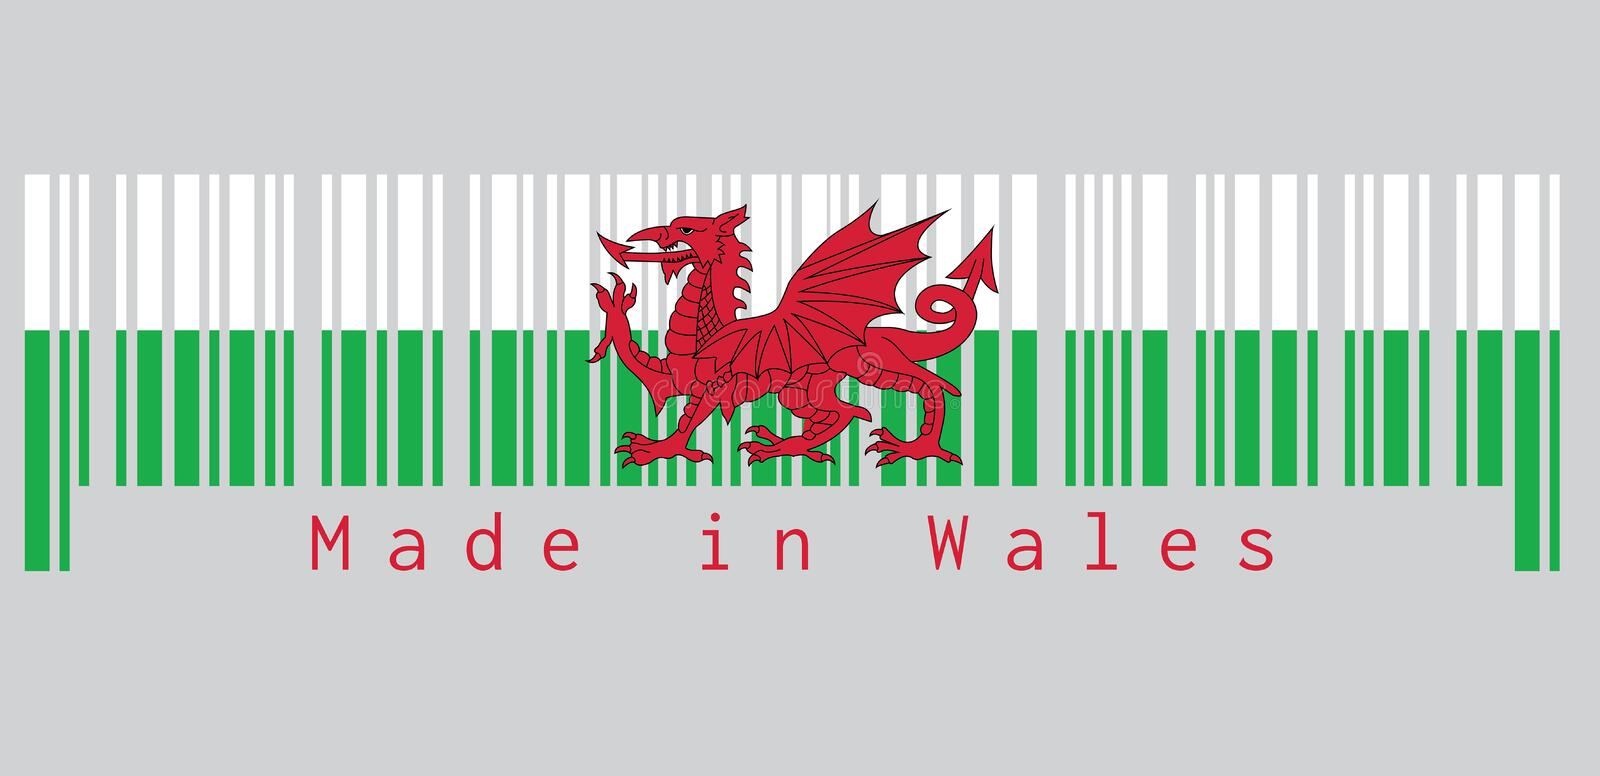 Barcode set the color of Wales flag, consists of a red dragon passant on a green and white field. text: Made in Wales. Concept of sale or business stock illustration